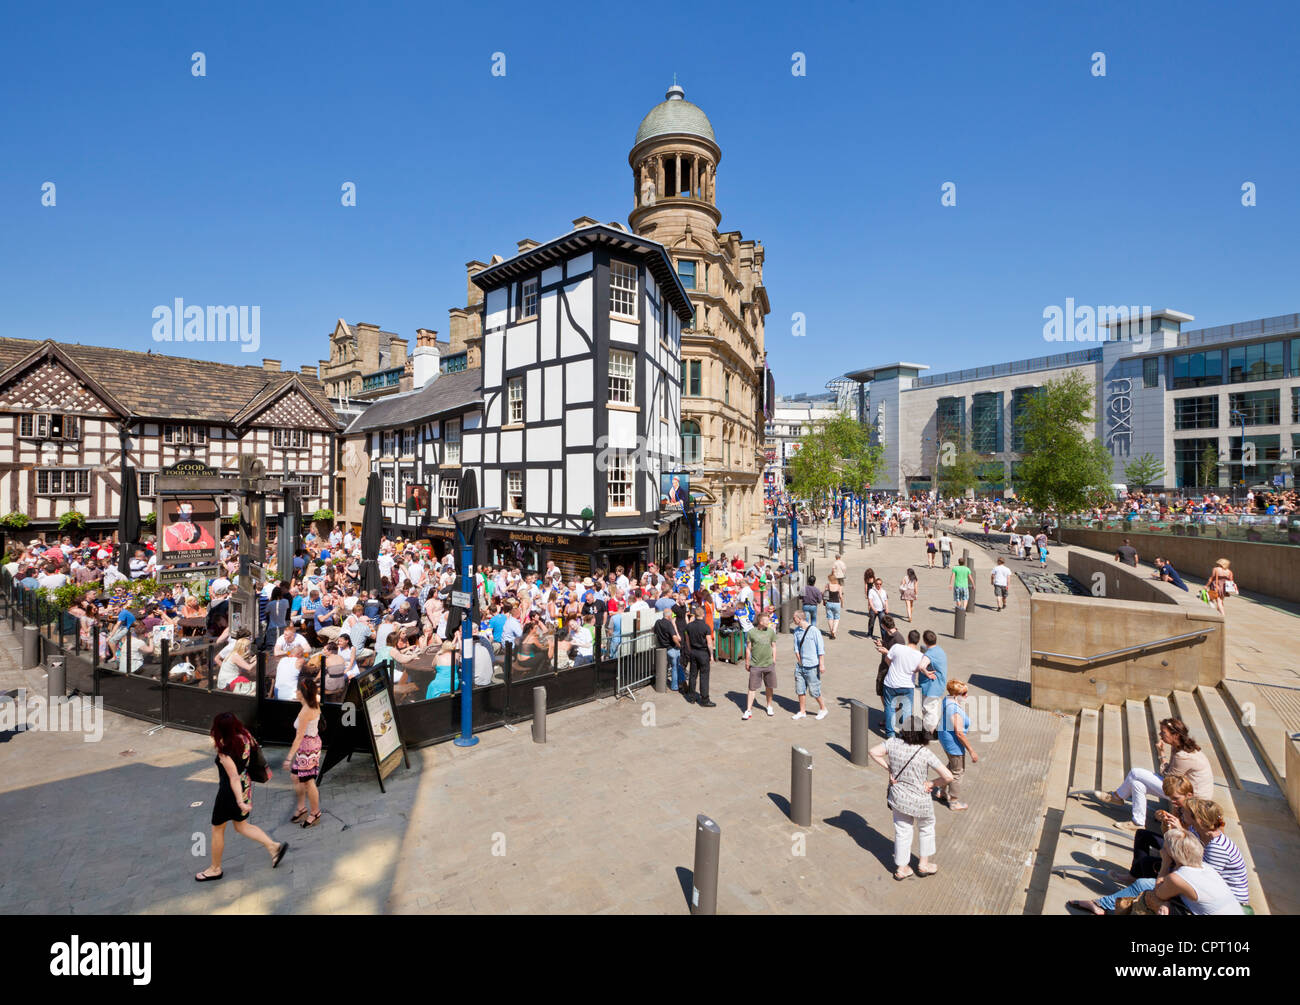 Crowded Sinclair's Oyster Bar and The Old Wellington public house Cathedral Gates Manchester City Centre England Stock Photo